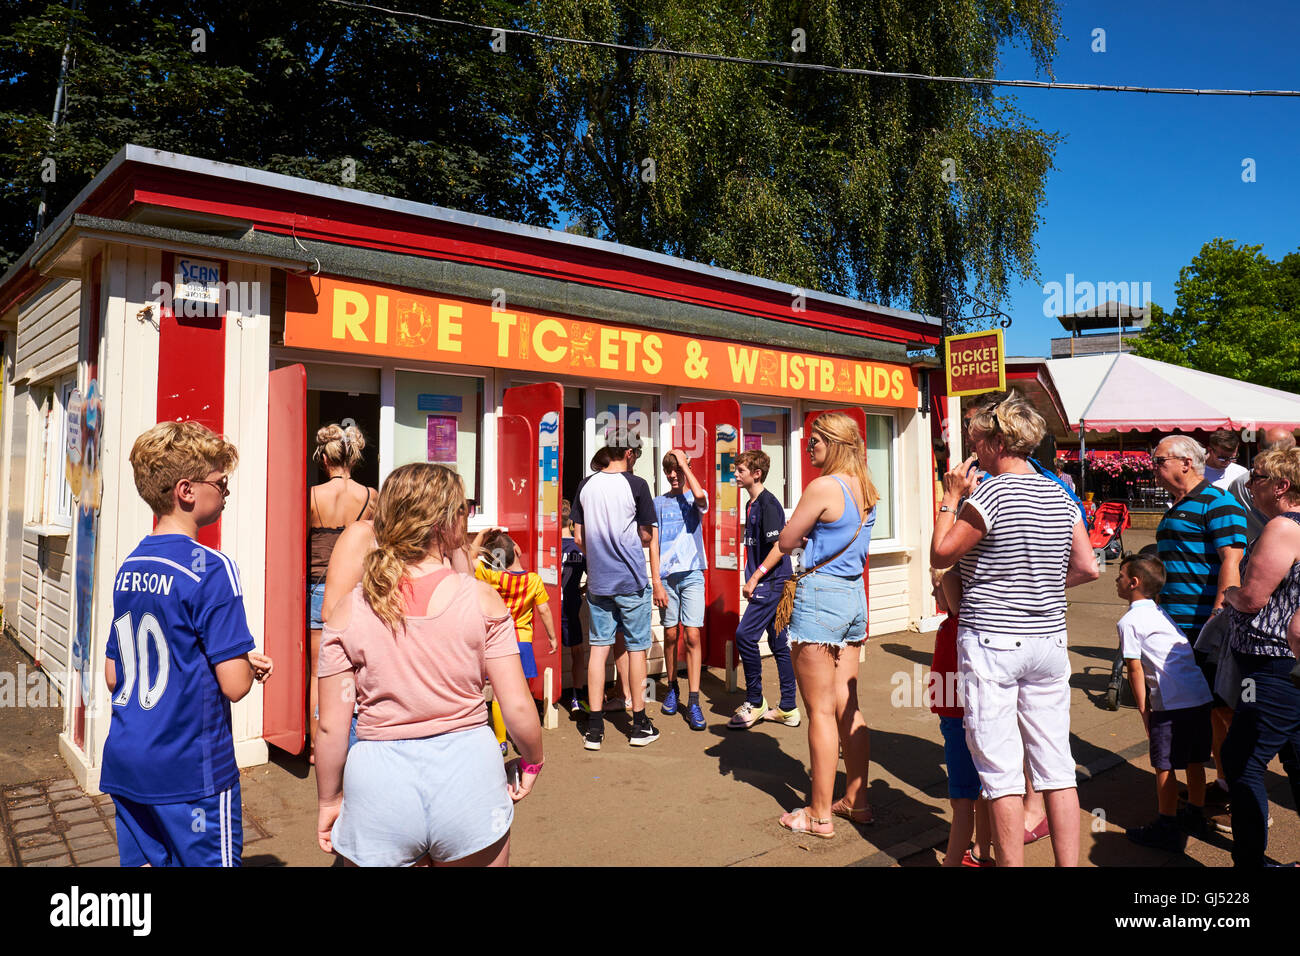 Theme Park Ticket Stock Photos Images Alamy Tiket Wild Life Sydney Anak Queuing For Tickets At A Booth Wicksteed The Second Oldest In Uk